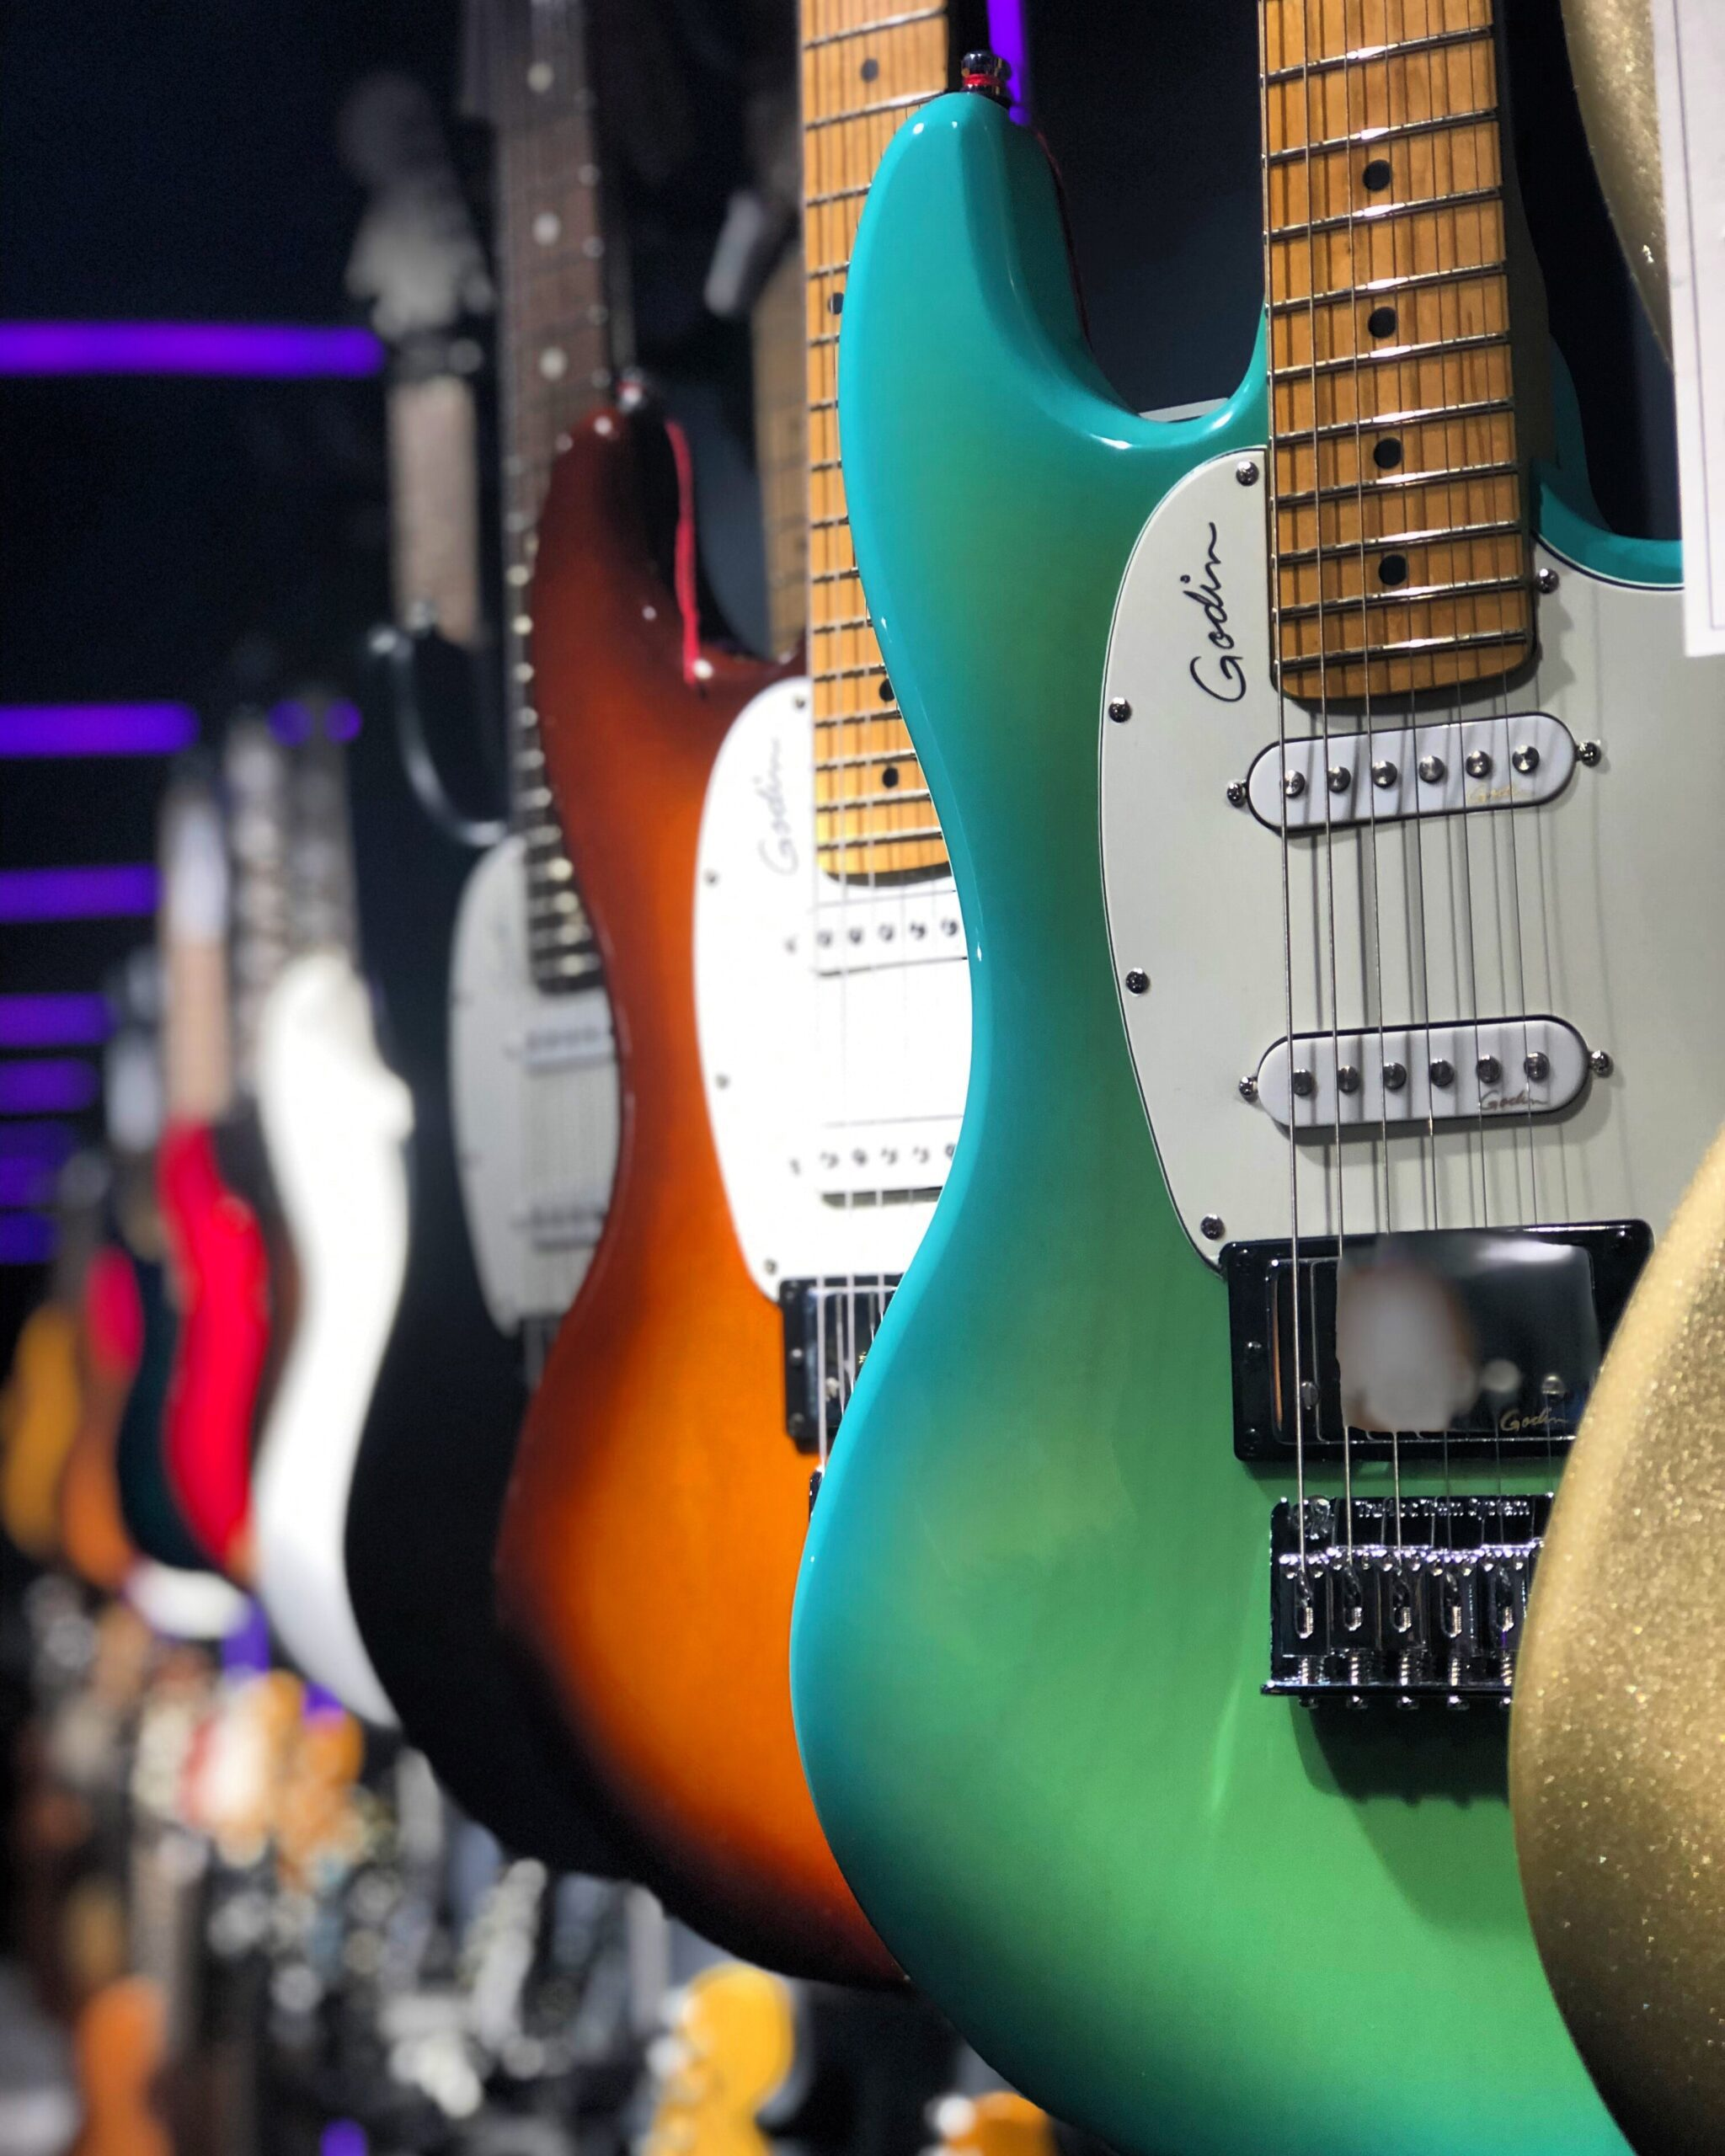 Row of electric guitars in shop by Mohrez Labaf